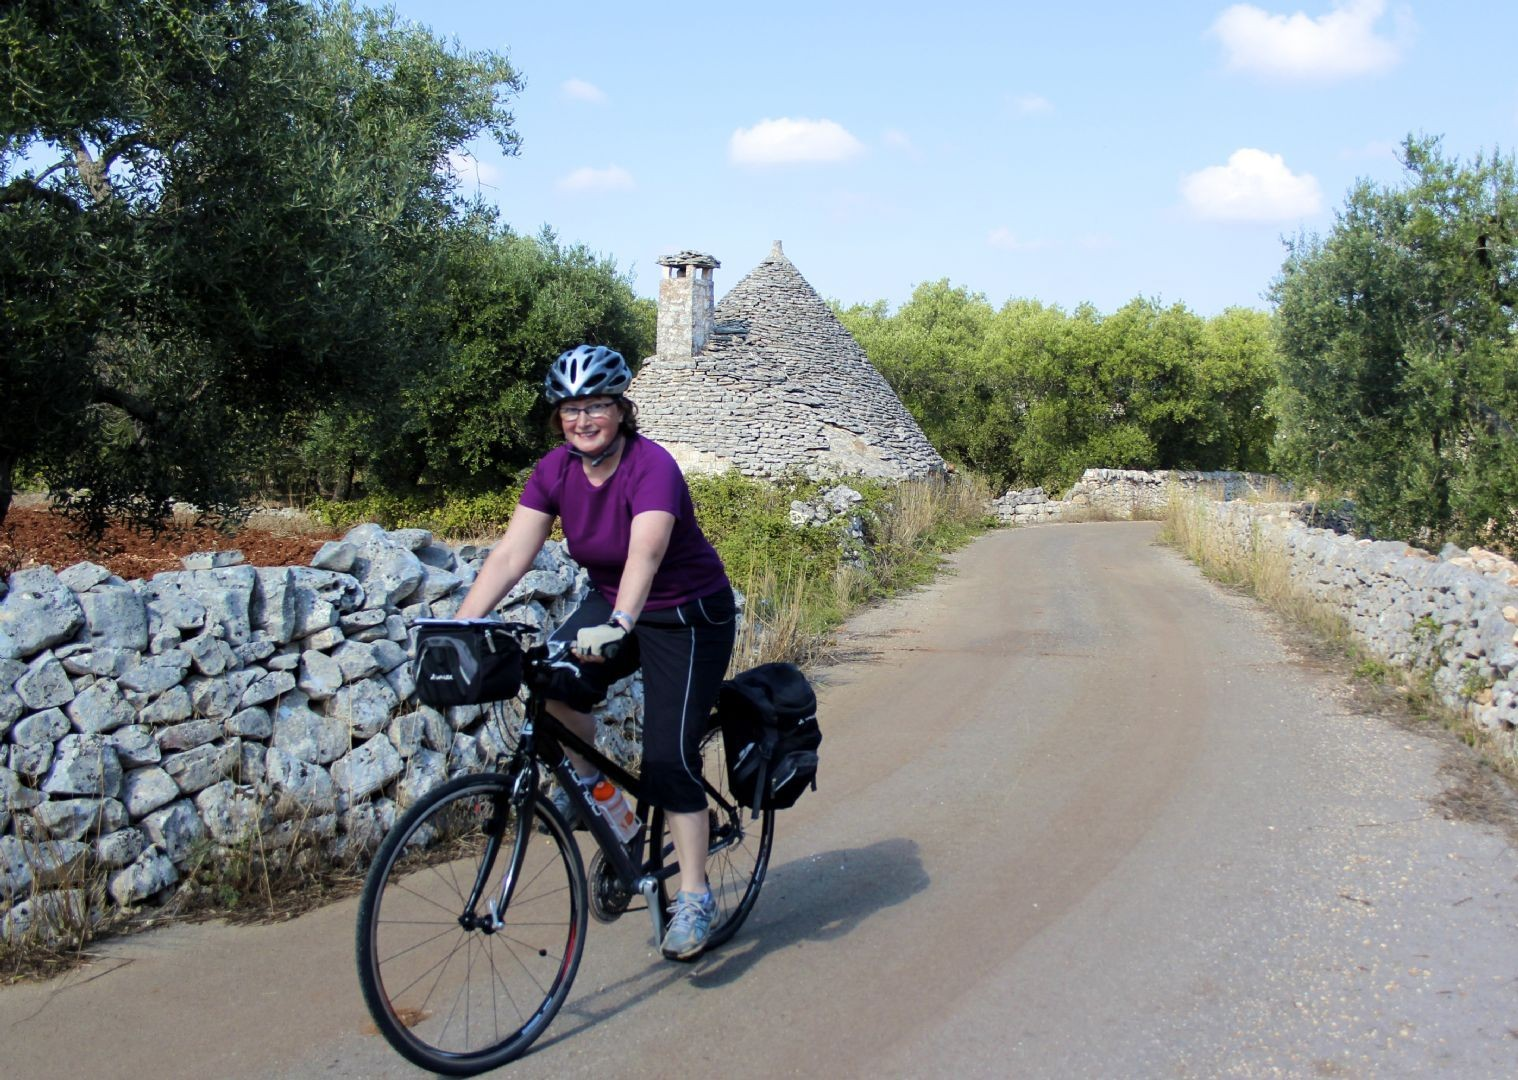 cycling-holiday-puglia-italy-landscape-culture.jpg - Italy - Puglia - Leisure Cycling